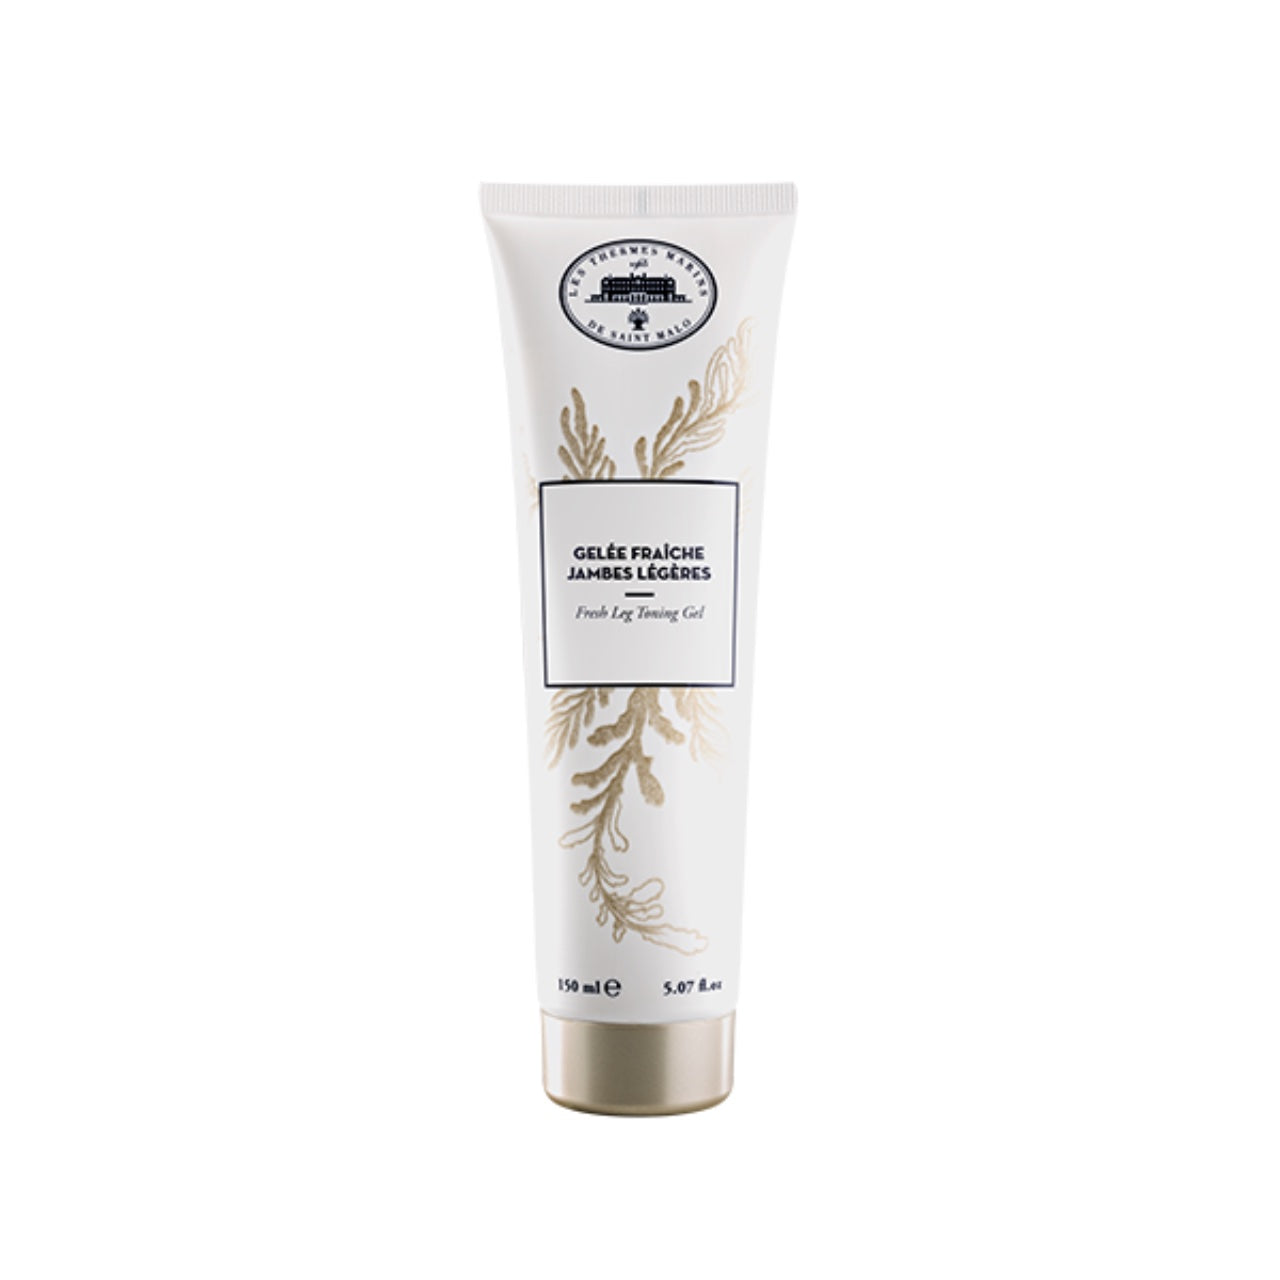 THERMES MARINS Fresh Leg Toning Gel